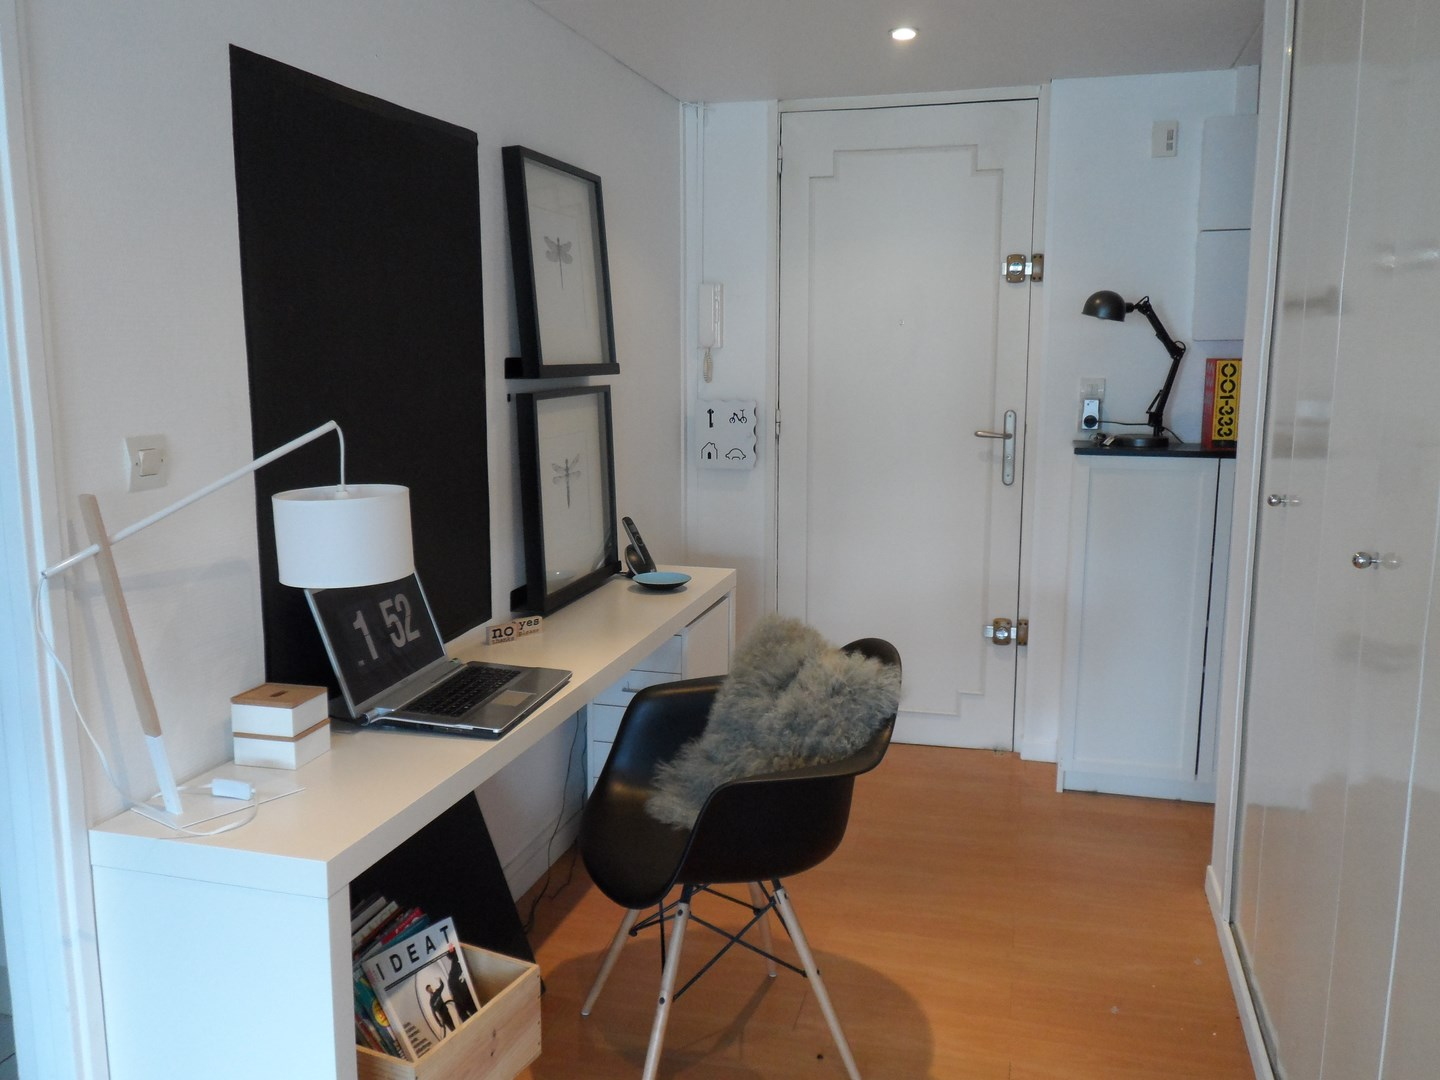 Question de style un bureau chez soi pour travailler zen planete deco a homes world for Bureau de salon